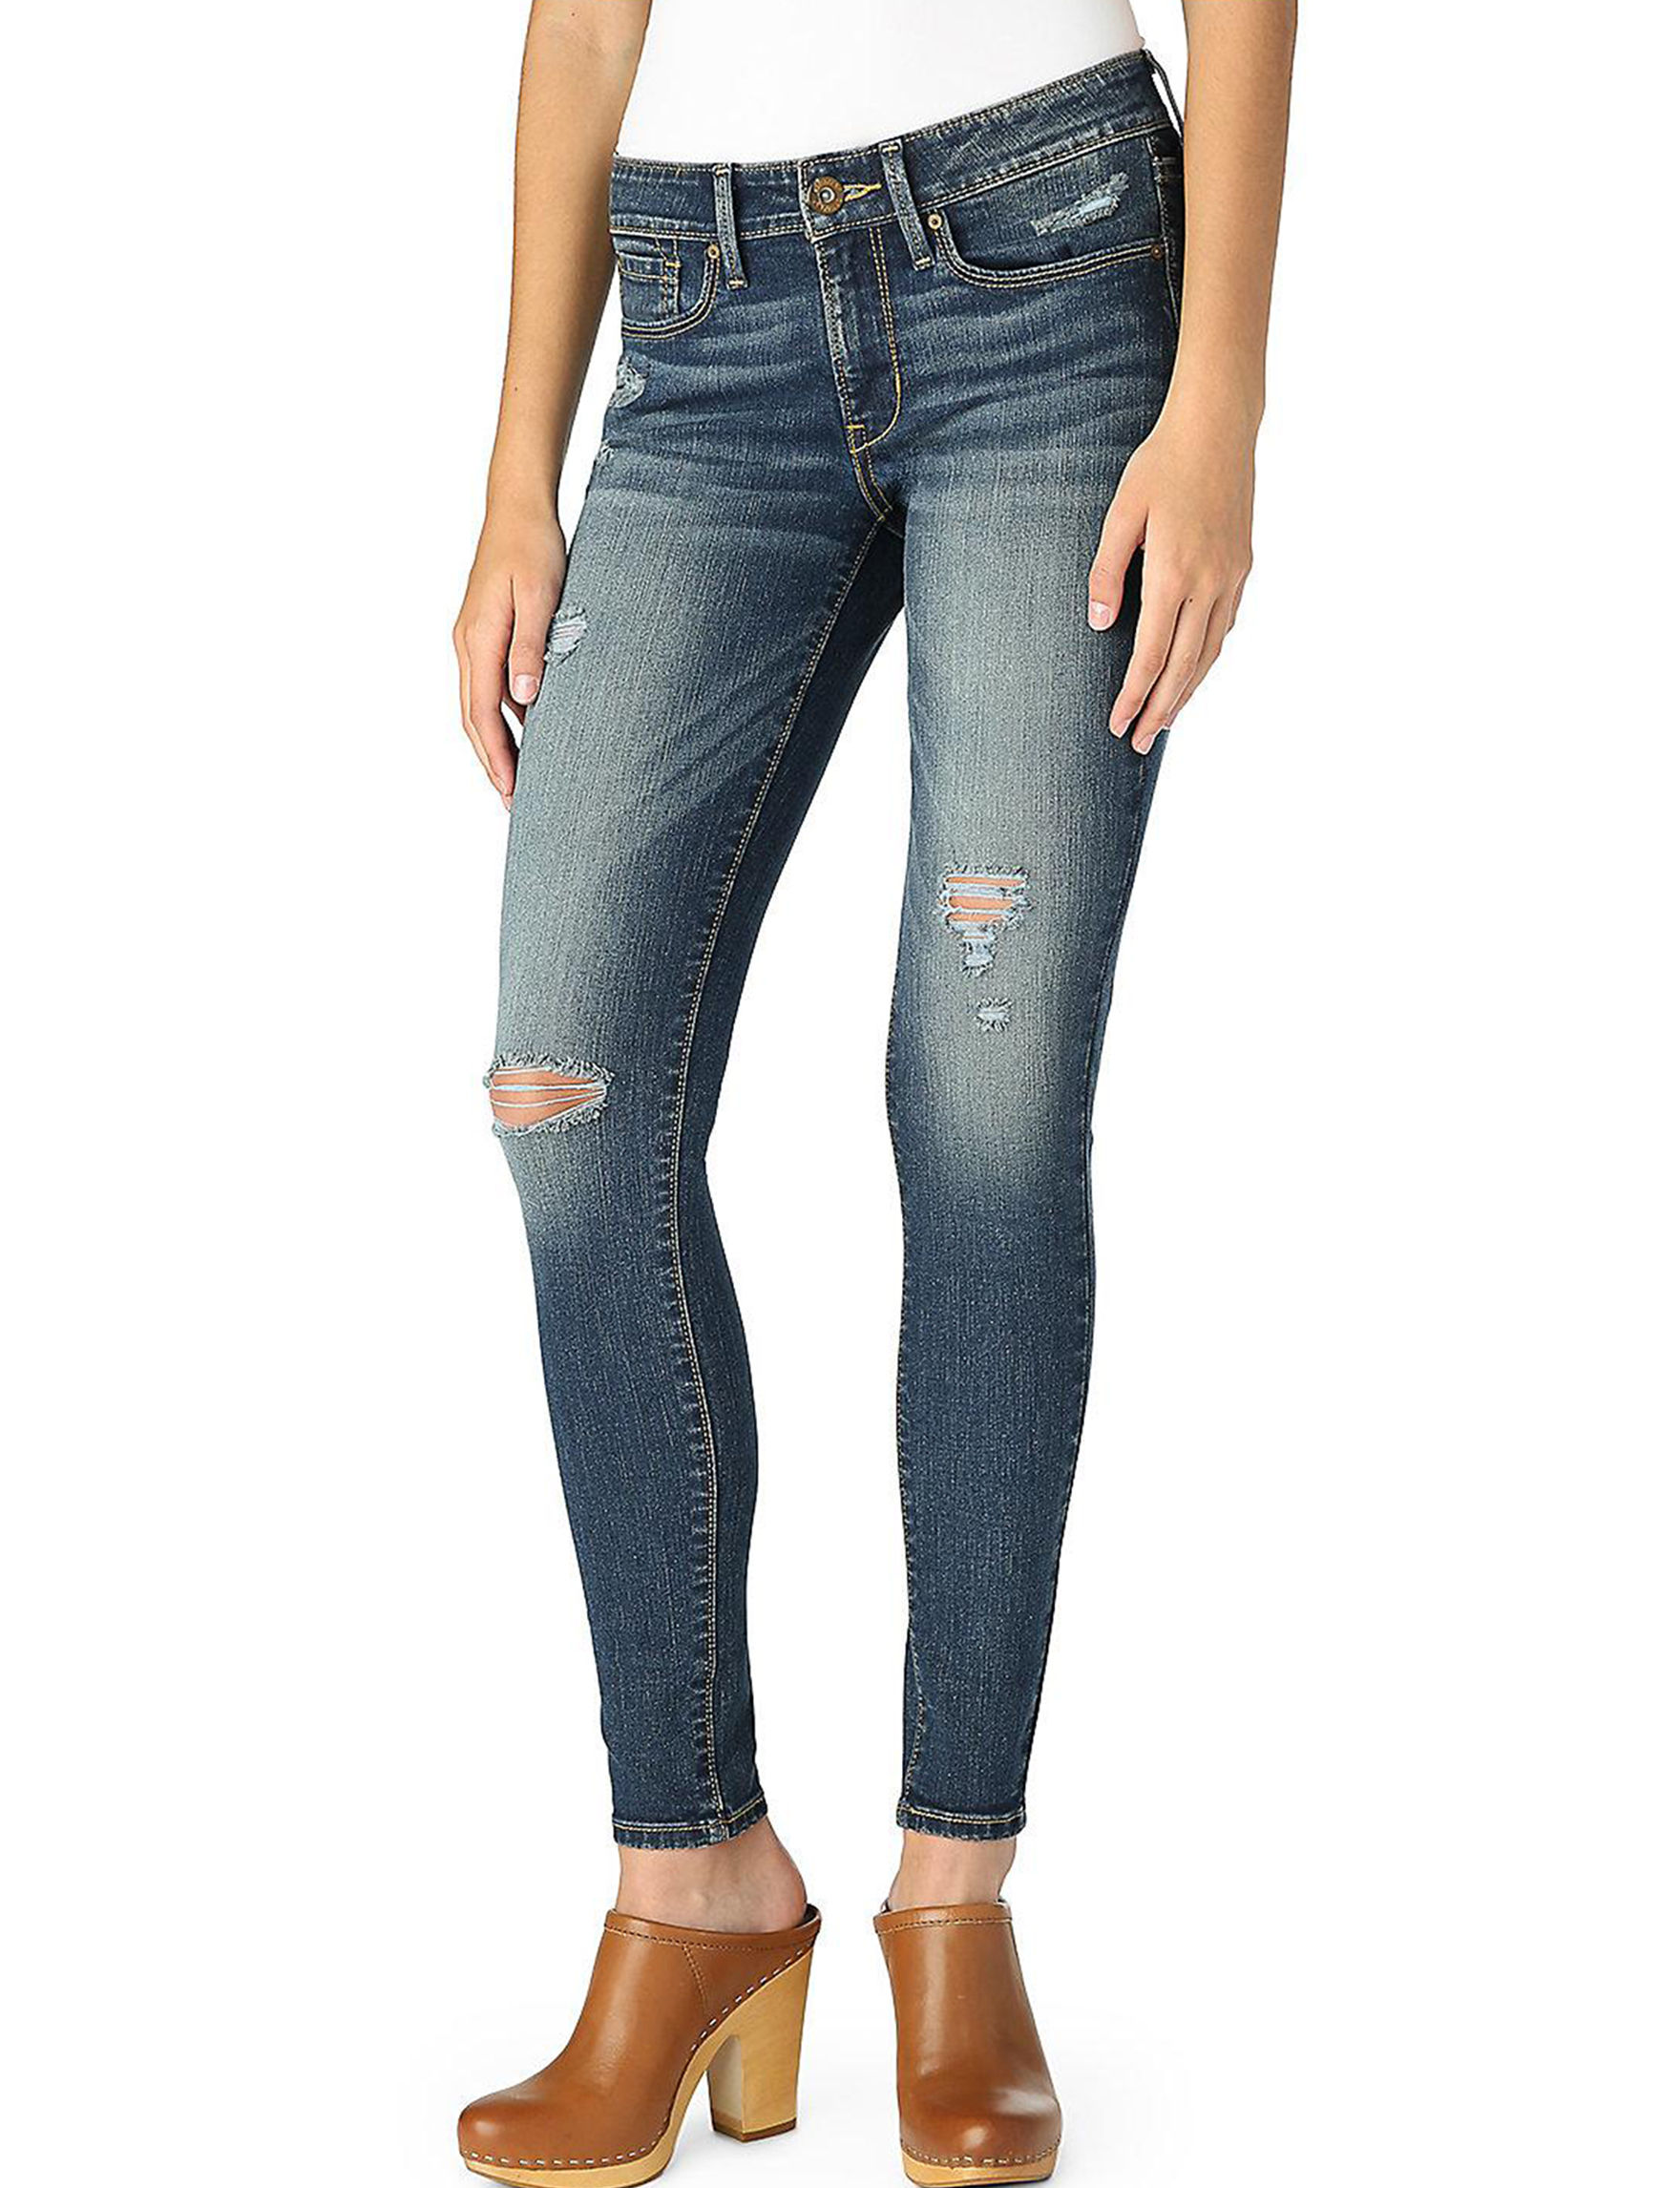 b3a1012349b3e6 Denizen from Levi's Women's Low Rise Distressed Jeggings | Stage Stores